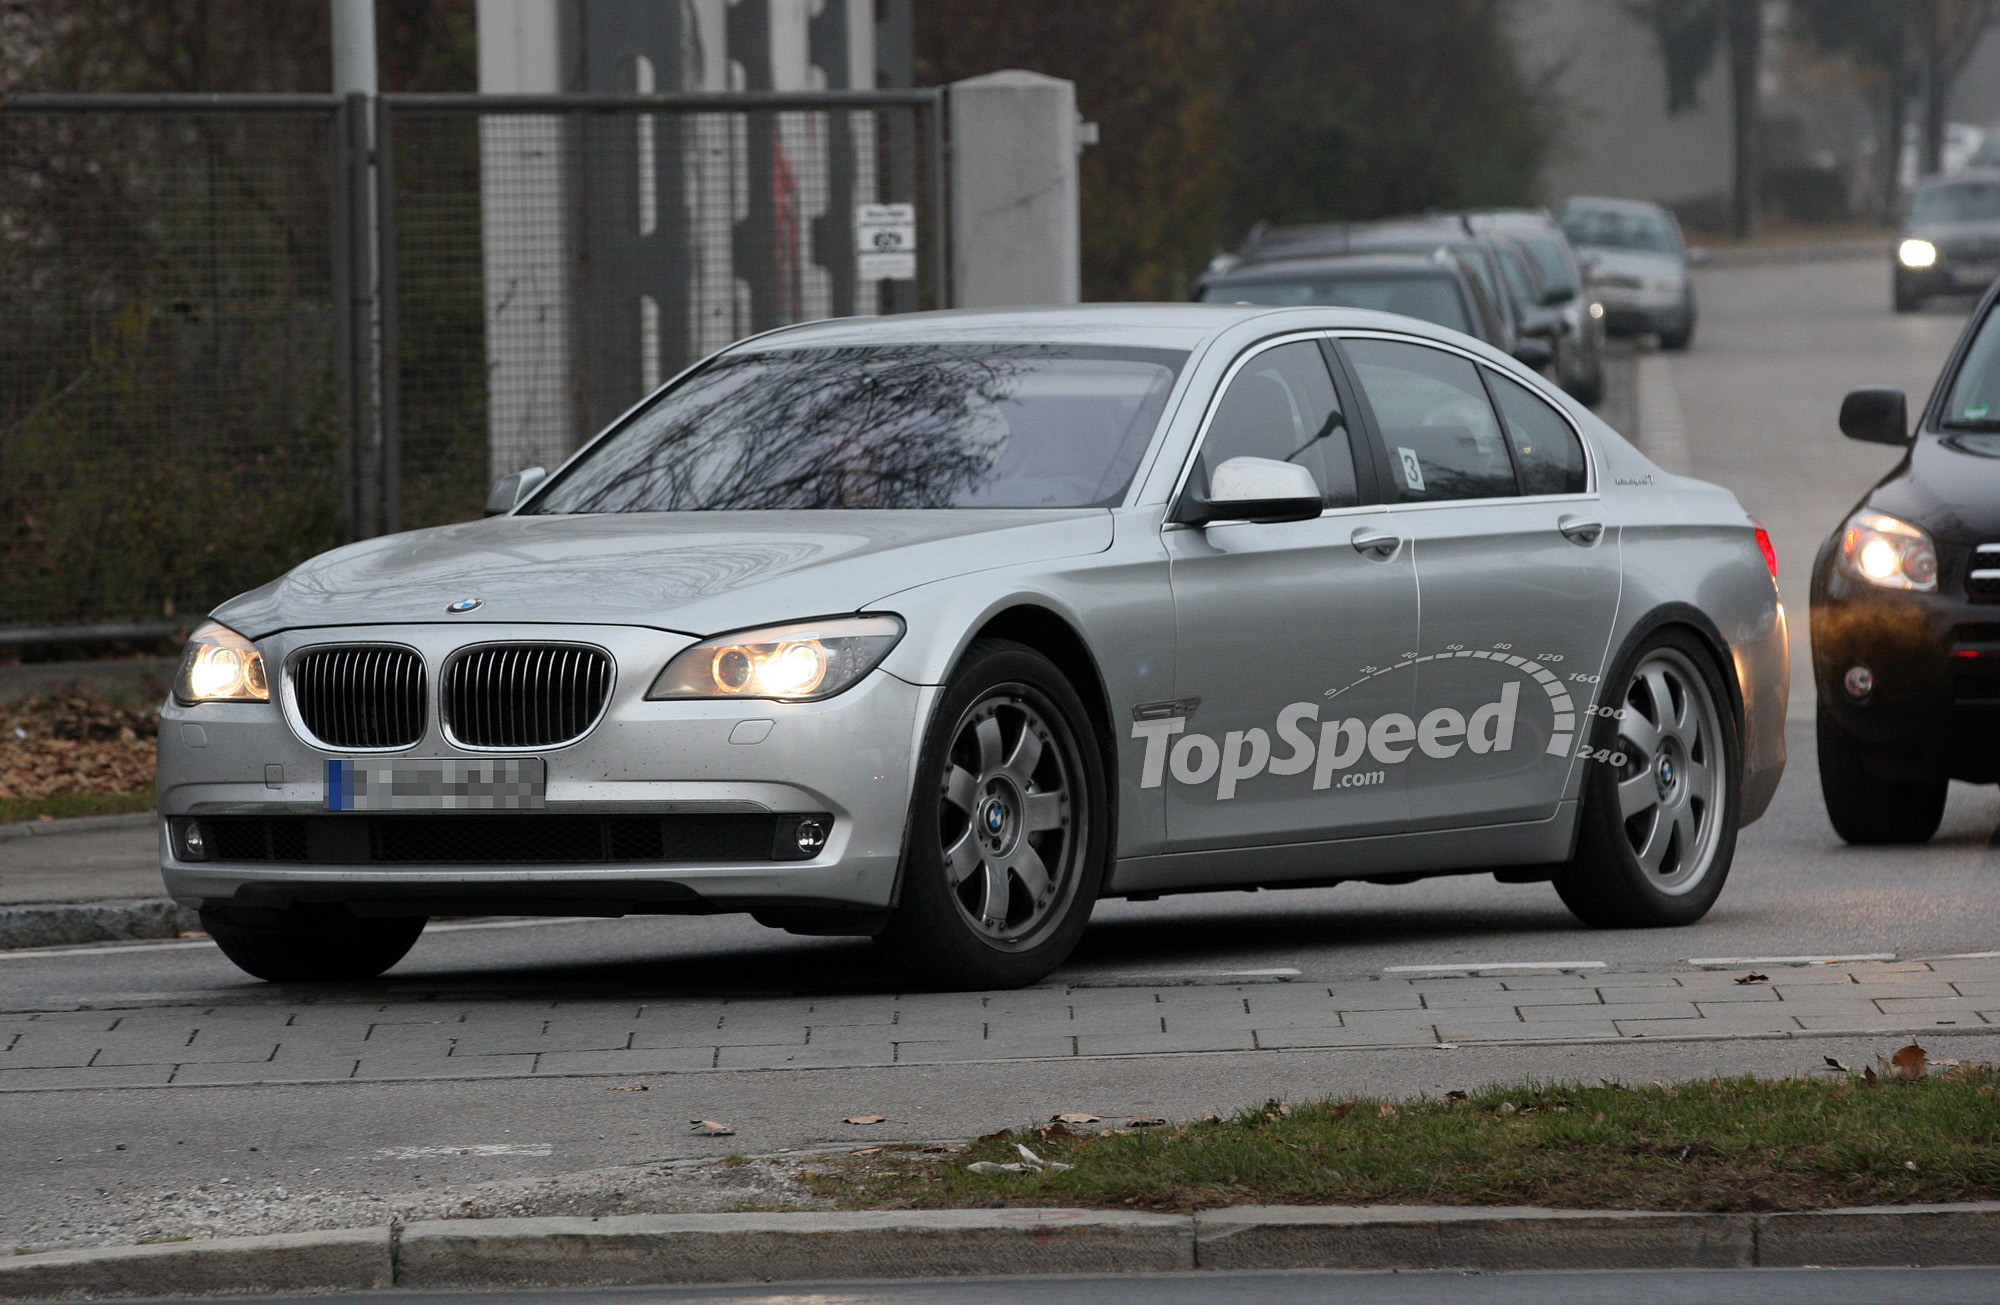 2015 Bmw I5 Sedan Top Speed